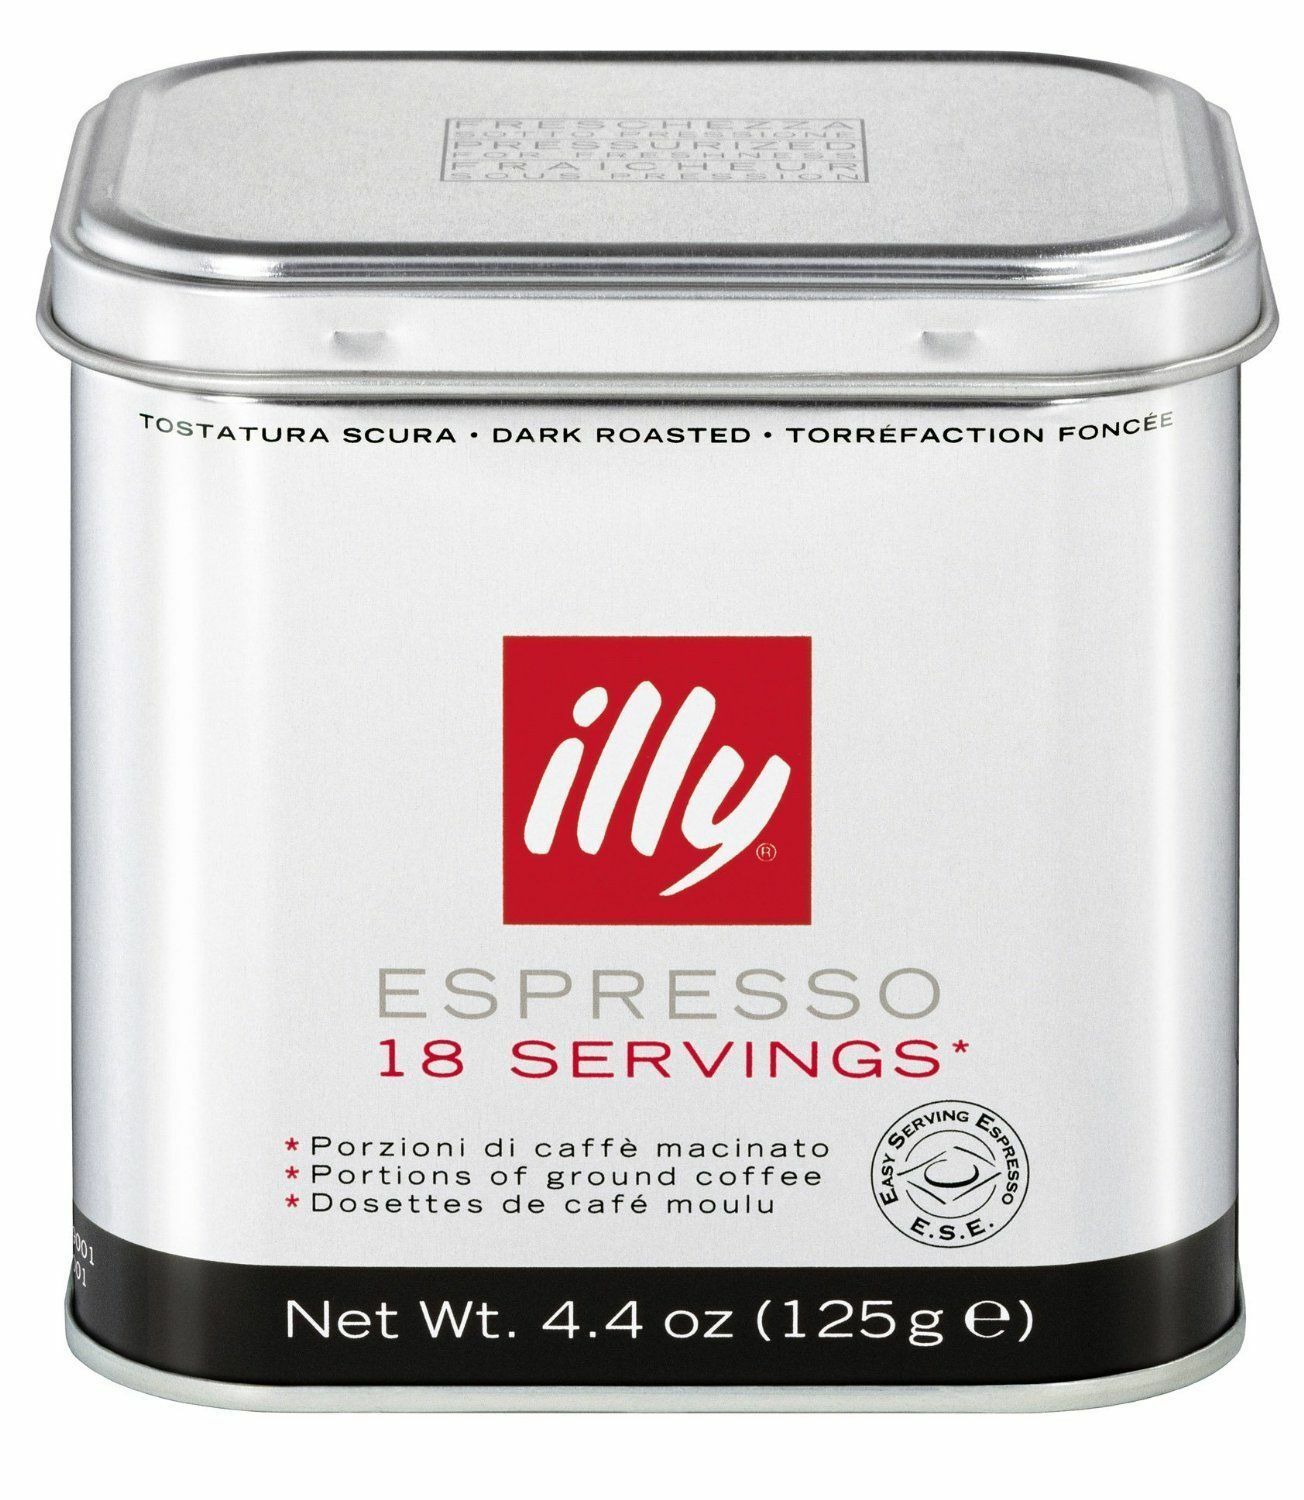 Espresso Coffee Brands ~ Top coffee brands ebay